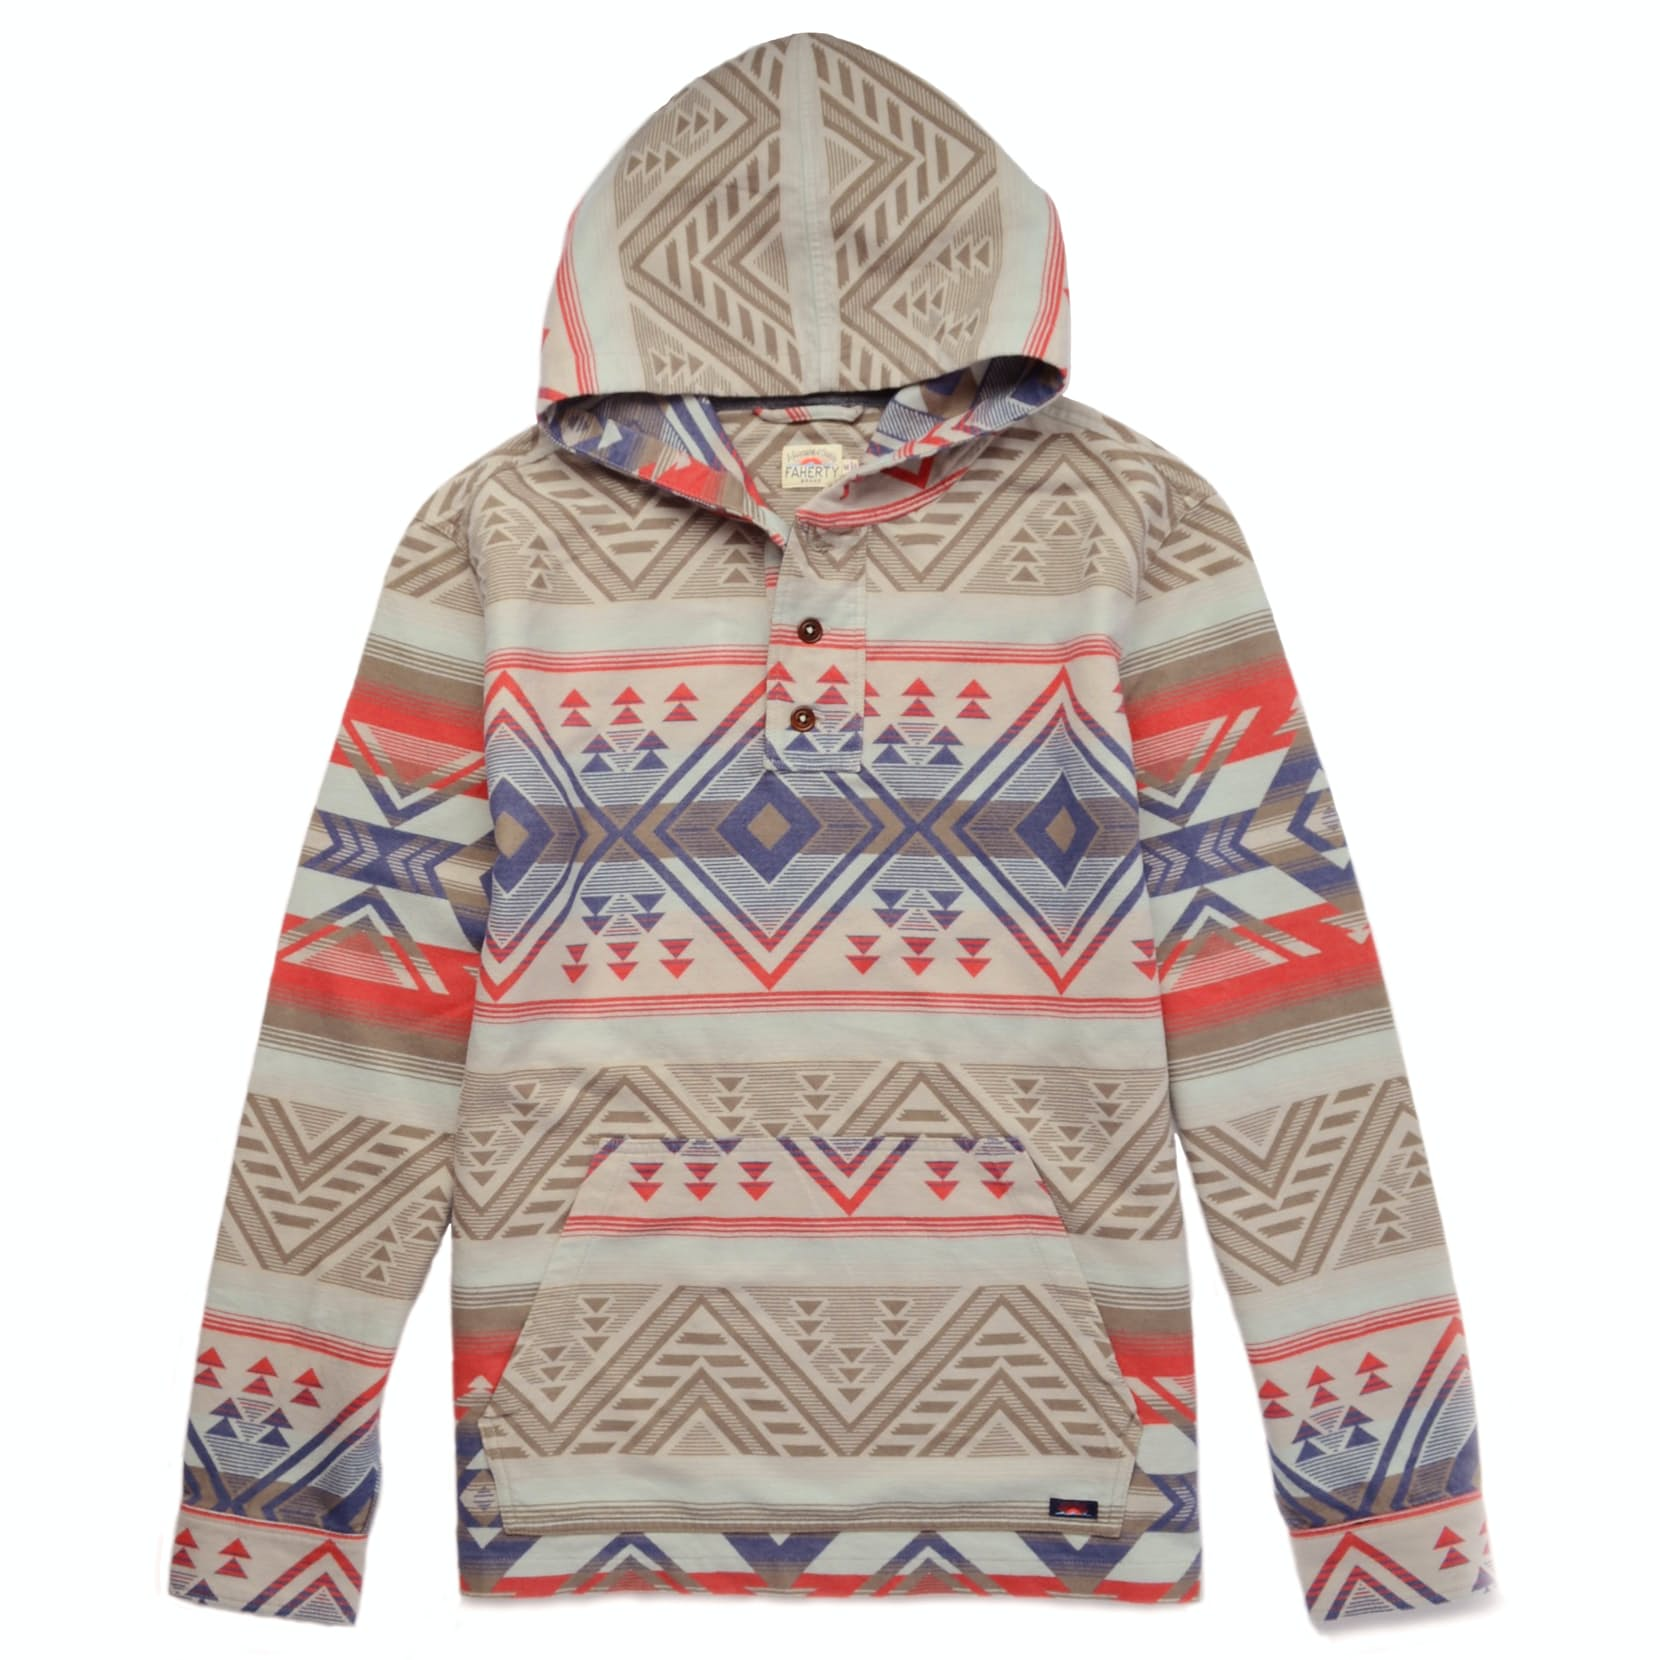 Qiqodkf7dg faherty brand aztec poncho huckberry exclusive 0 original